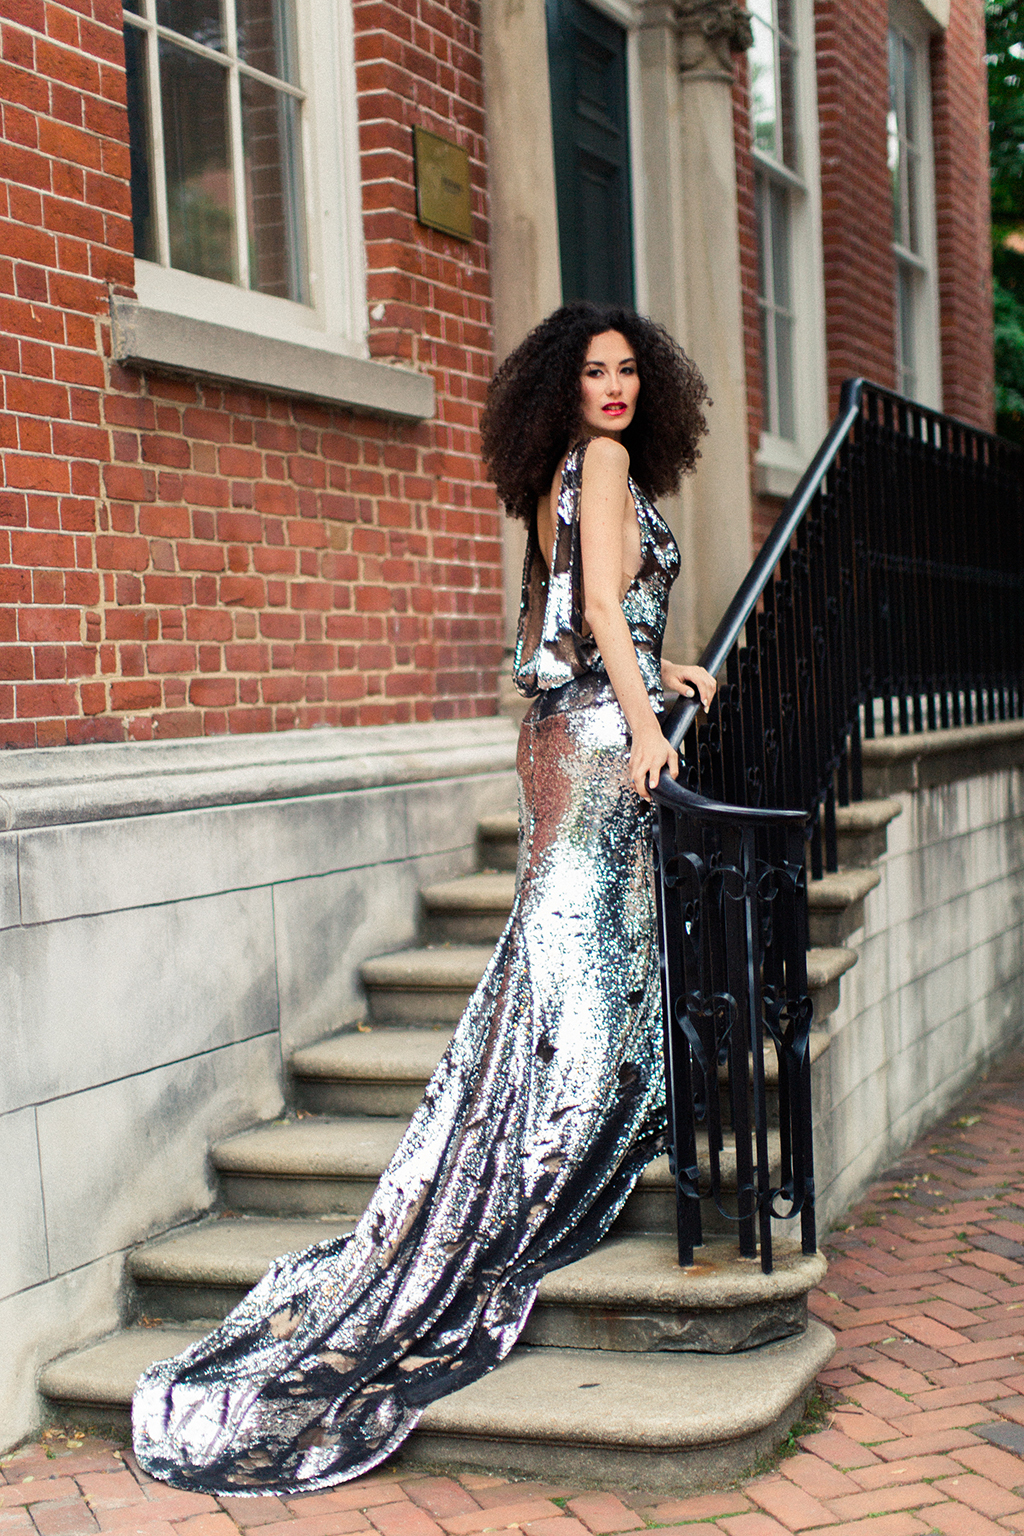 Laura Arana-Castillo Victor Salinas-Furio recreate favorite dates in Old Town Alexandria spring anniversary shoot